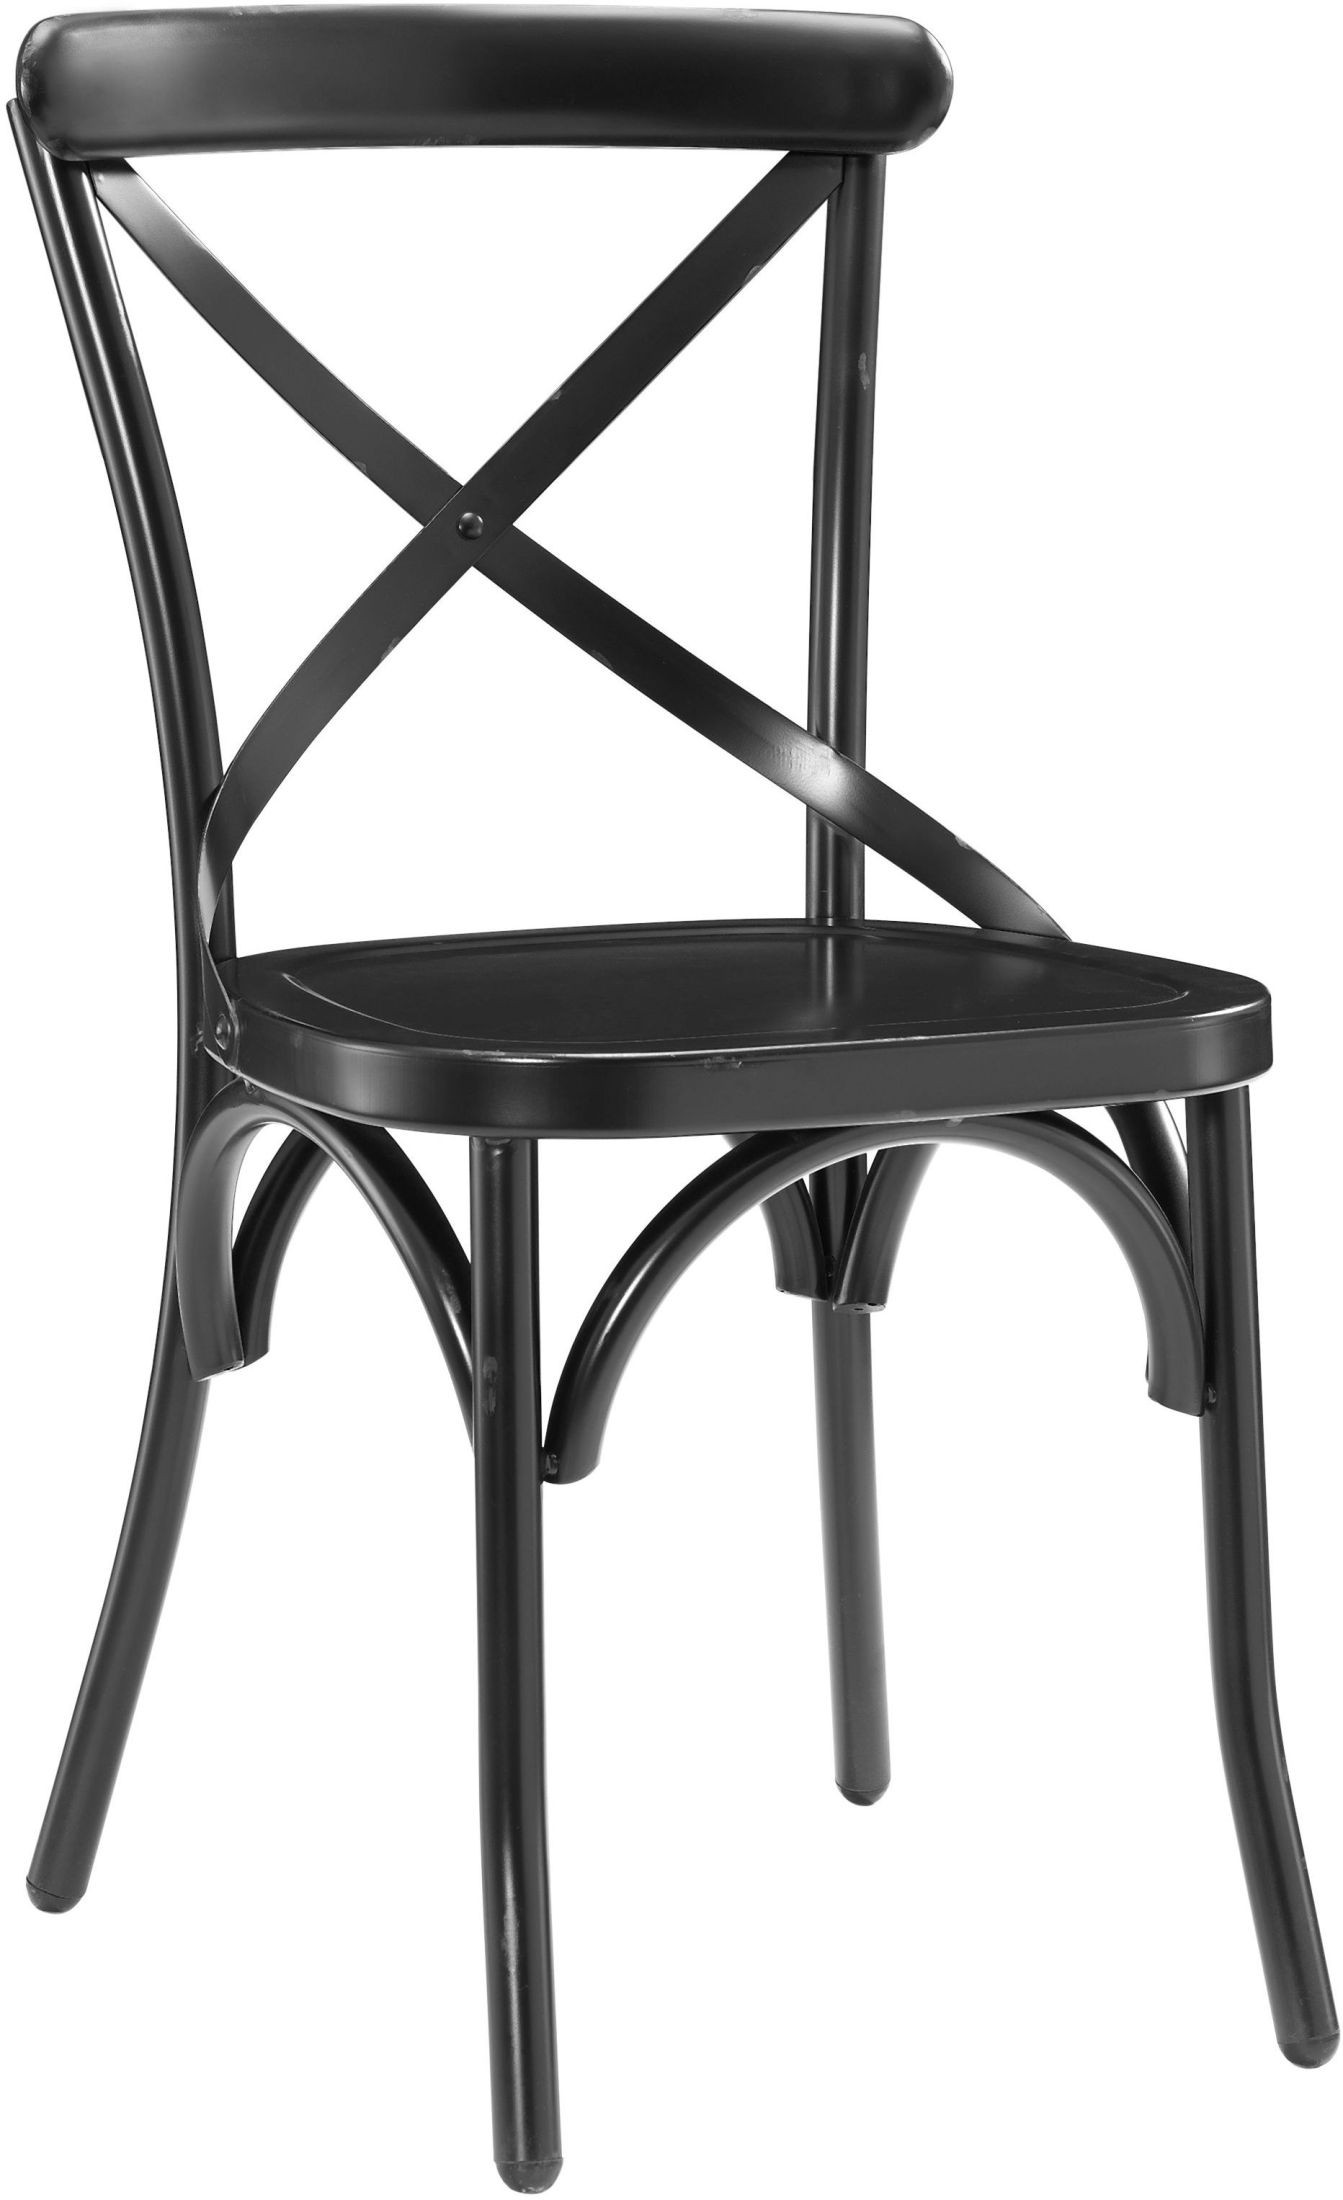 Distressed Antique Black Metal Dining Chair Set of 2 from